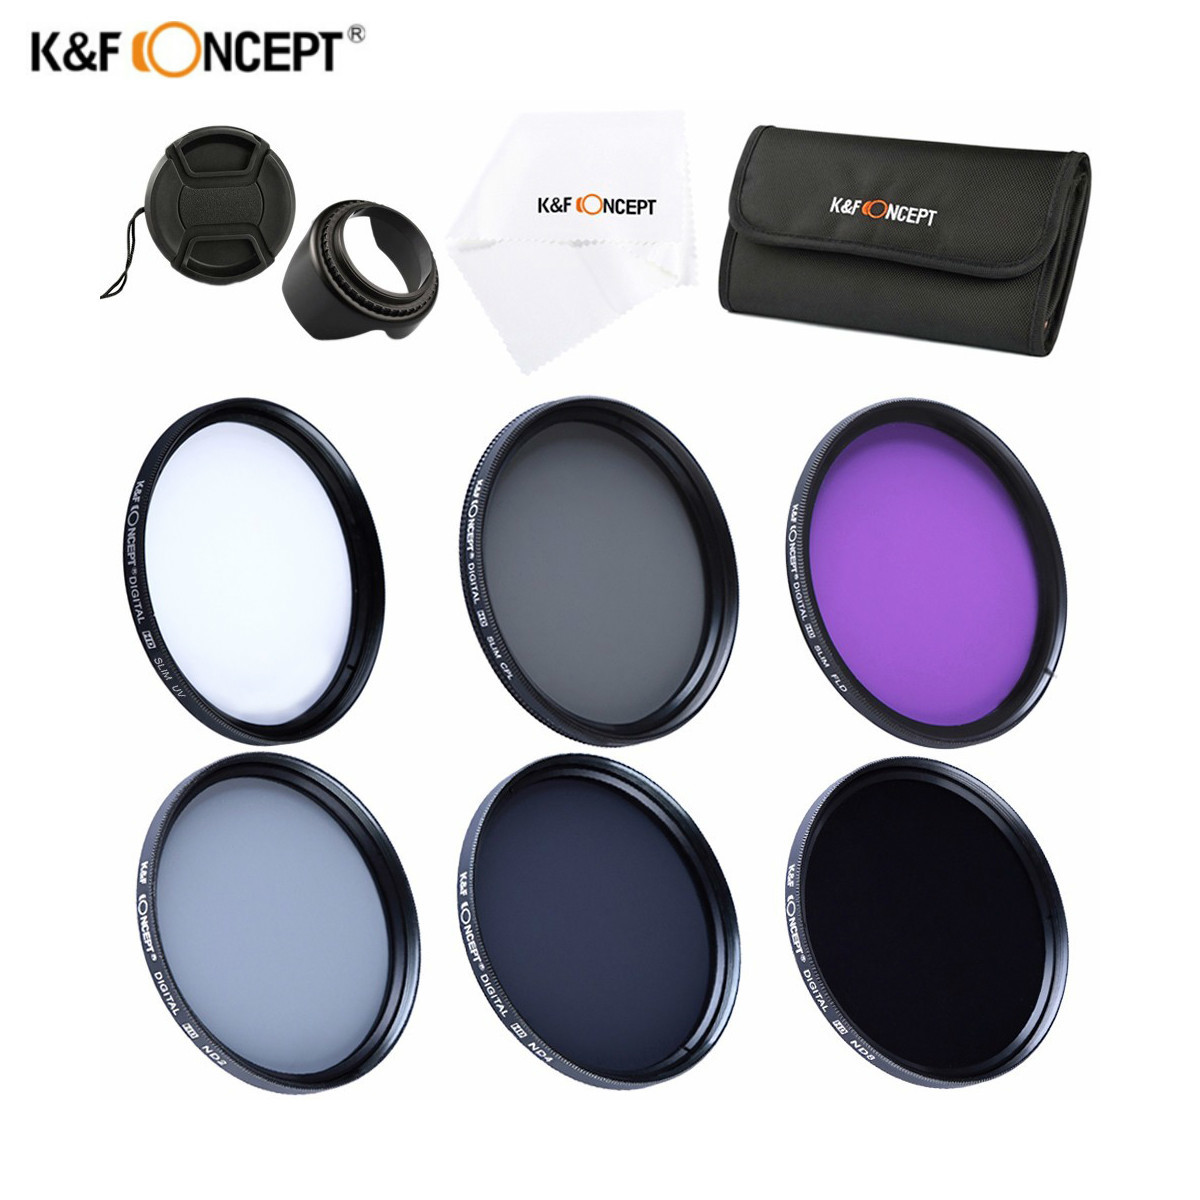 K&F CONCEPT CPL UV FLD ND2 ND4 ND8 Lens Filter Set for Canon Nikon 37MM 40.5MM 49MM 52MM 55MM 58MM 62MM 67MM 72MM 77MM Polarizer светофильтр polaroid uv cpl fld warming 52mm набор фильтров pl4fil52